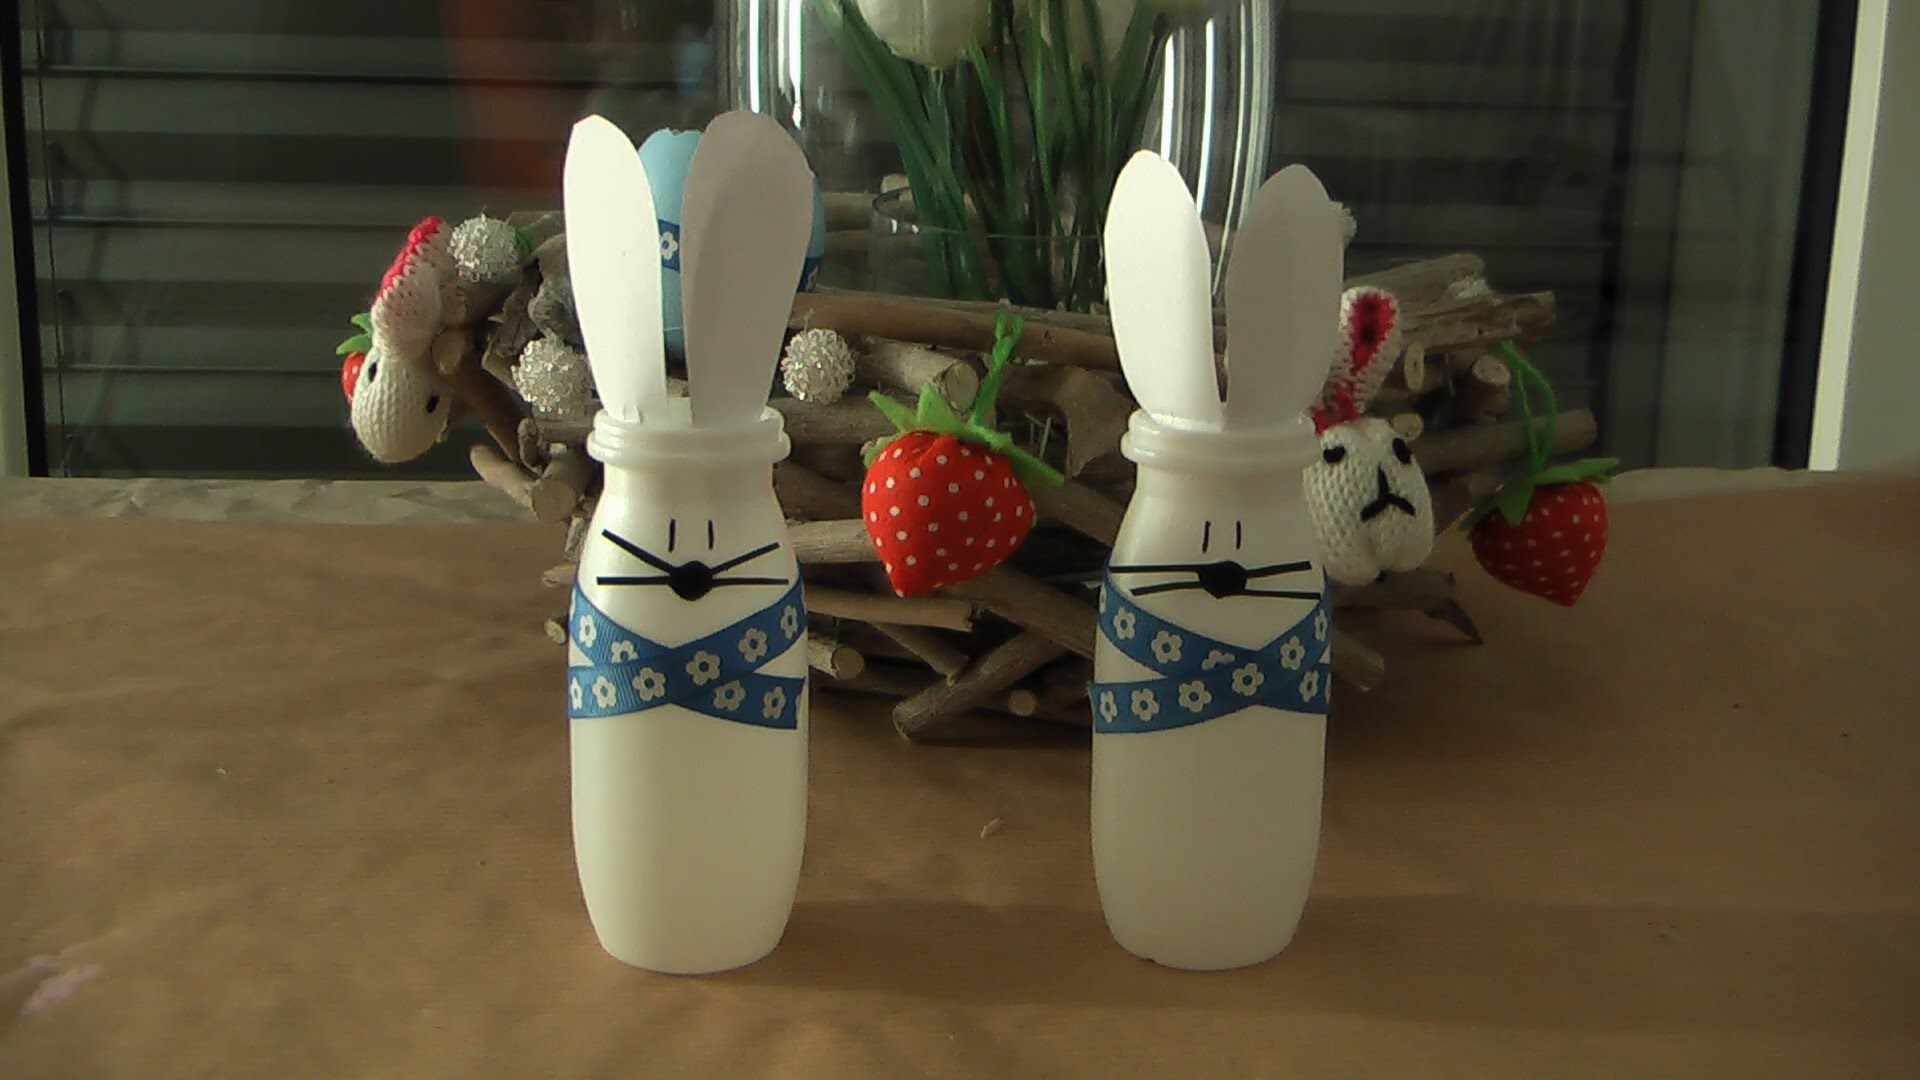 osterhase hase aus actimel verpackung basteln ostern diy atelier kunstkreis youtube diys. Black Bedroom Furniture Sets. Home Design Ideas